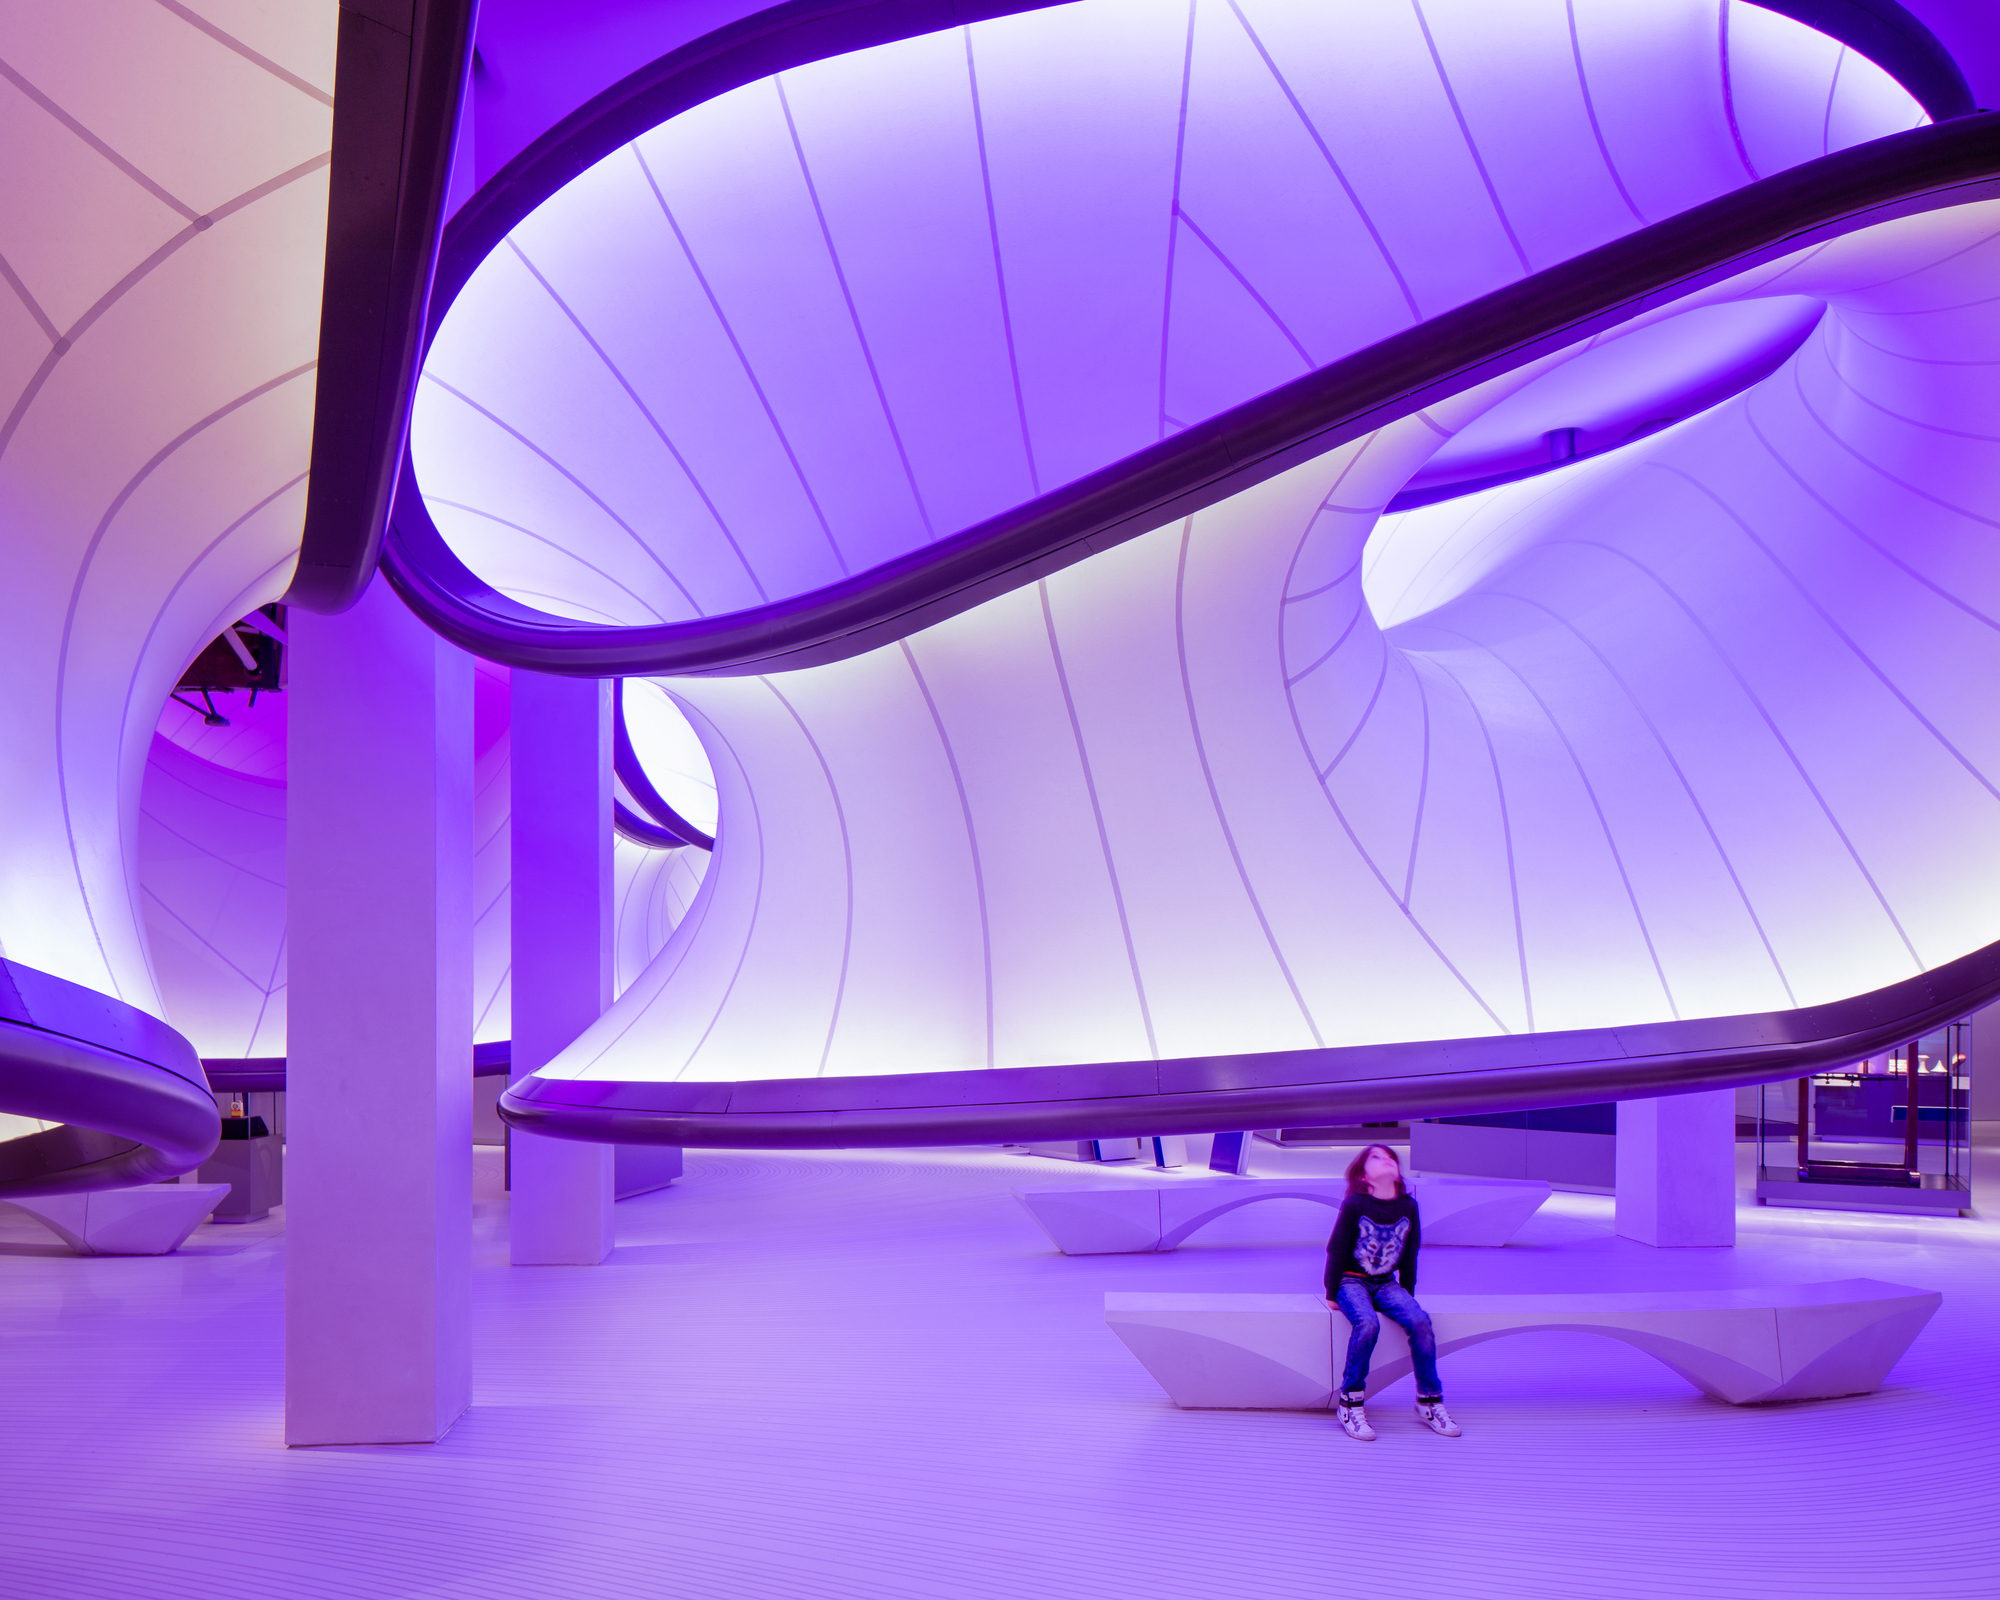 Inside Zaha Hadid Architects' Mathematics Gallery for the London Science Museum